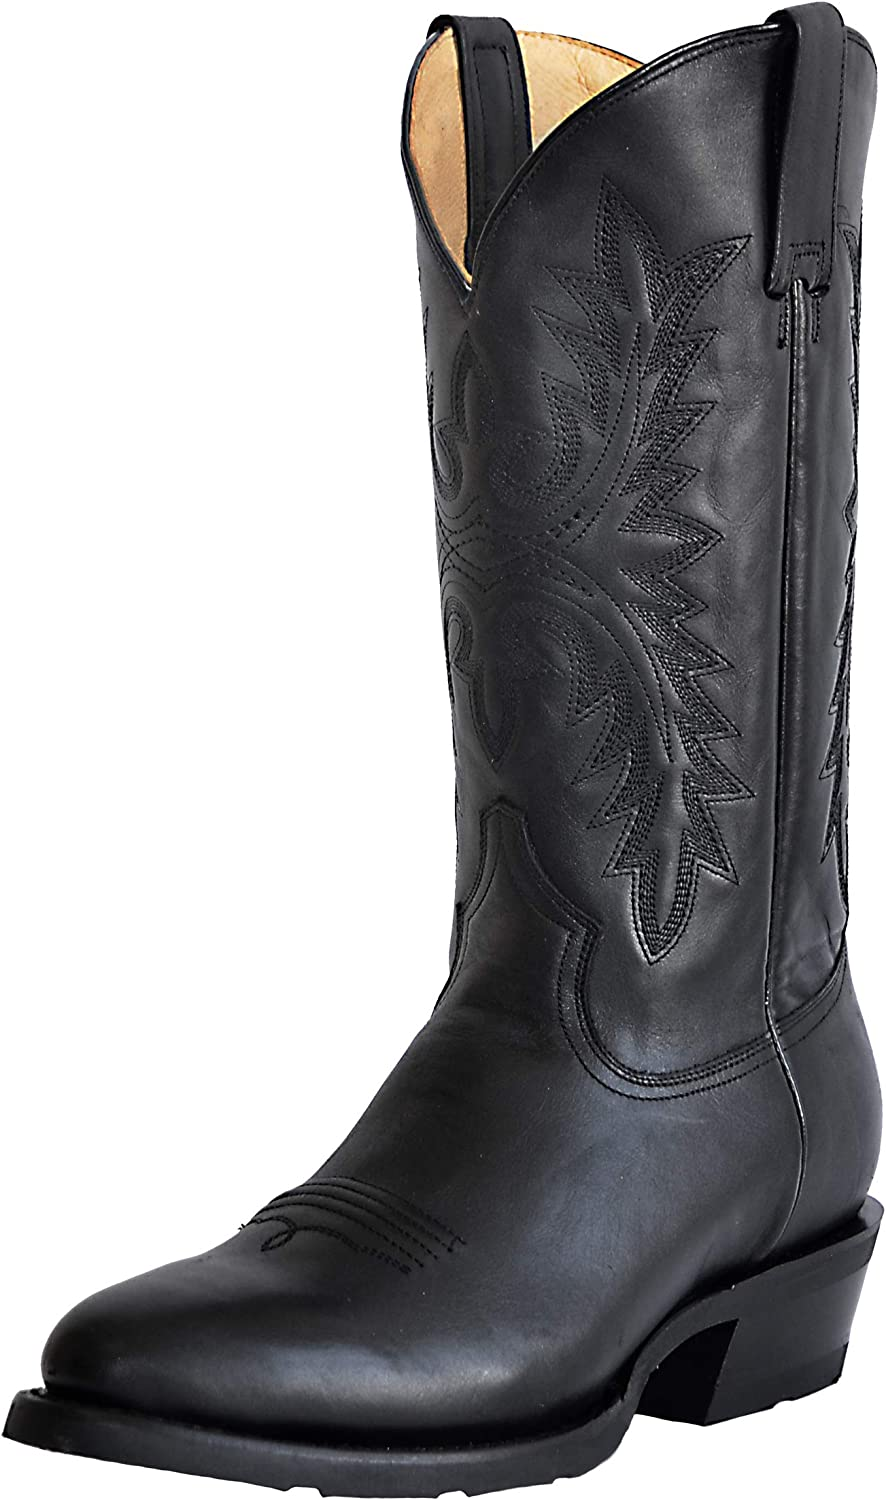 Mens Western Leather Cowboy Boots Duke Round We OFFer at cheap Easy-to-use prices by Heritage Si Toe